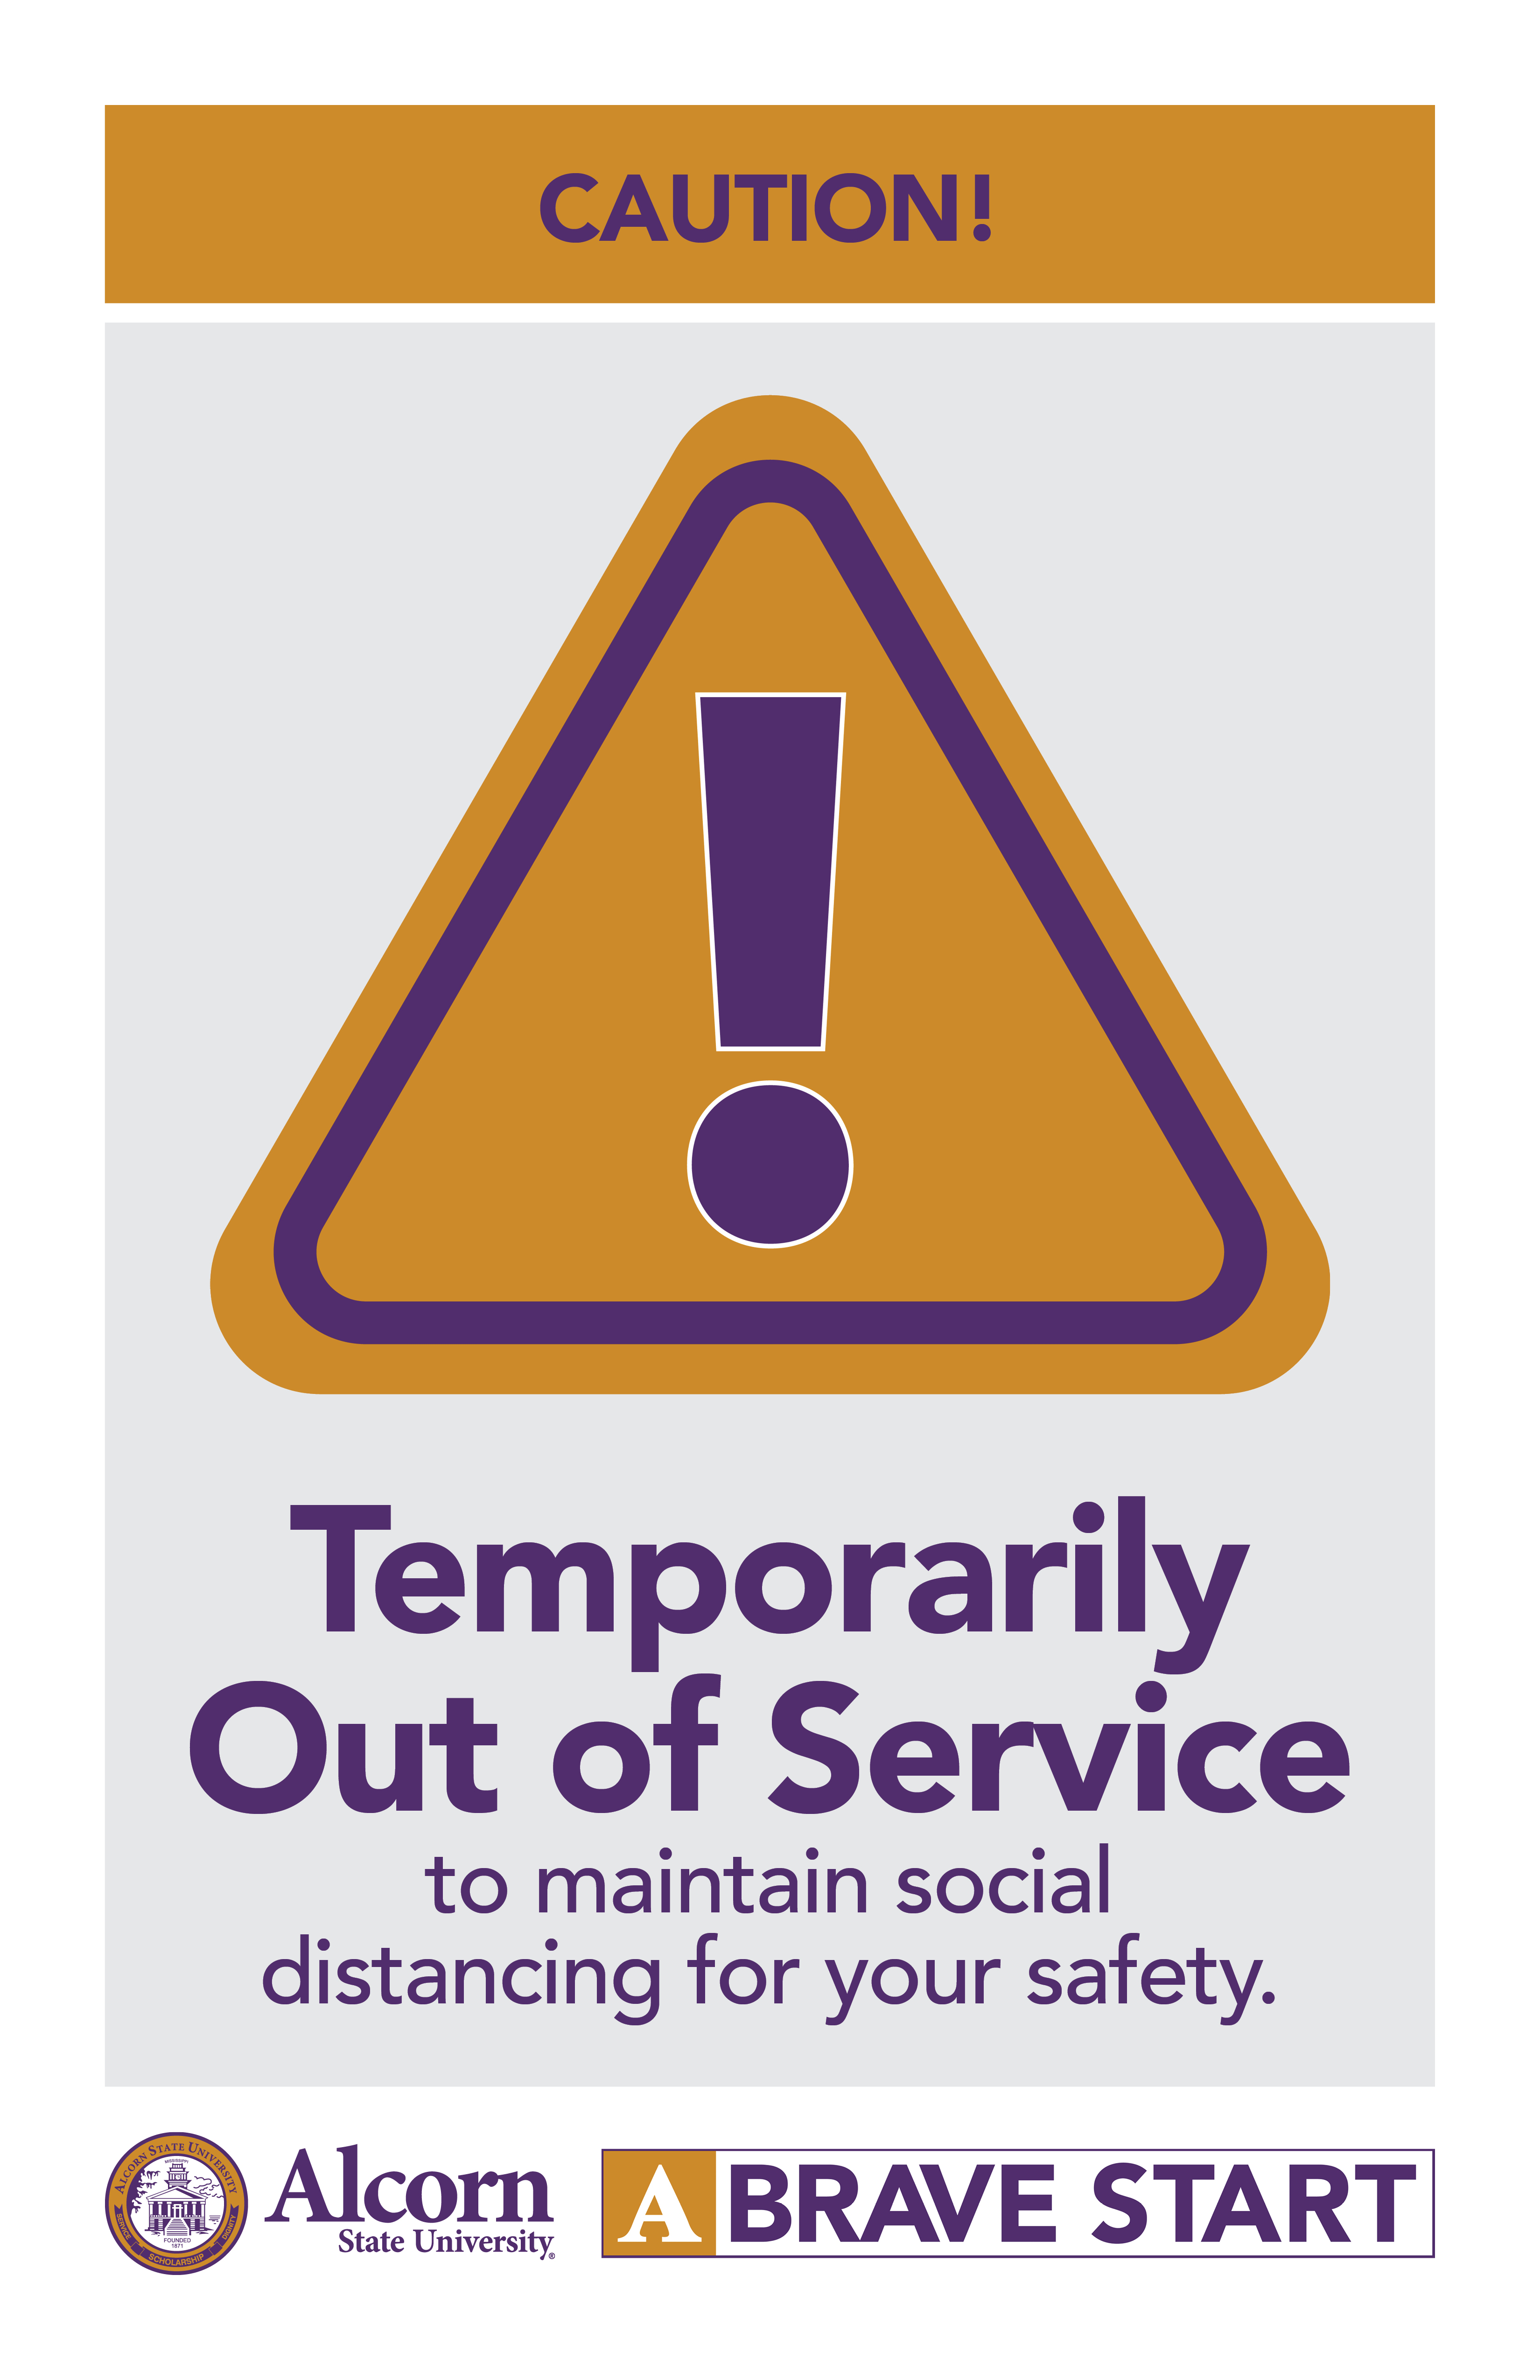 CAUTION! (Picture of a caution sign) Temporarily Out of Service to maintain social distancing for your safety. (Alcorn logo mark. A Brave Start logo mark.)